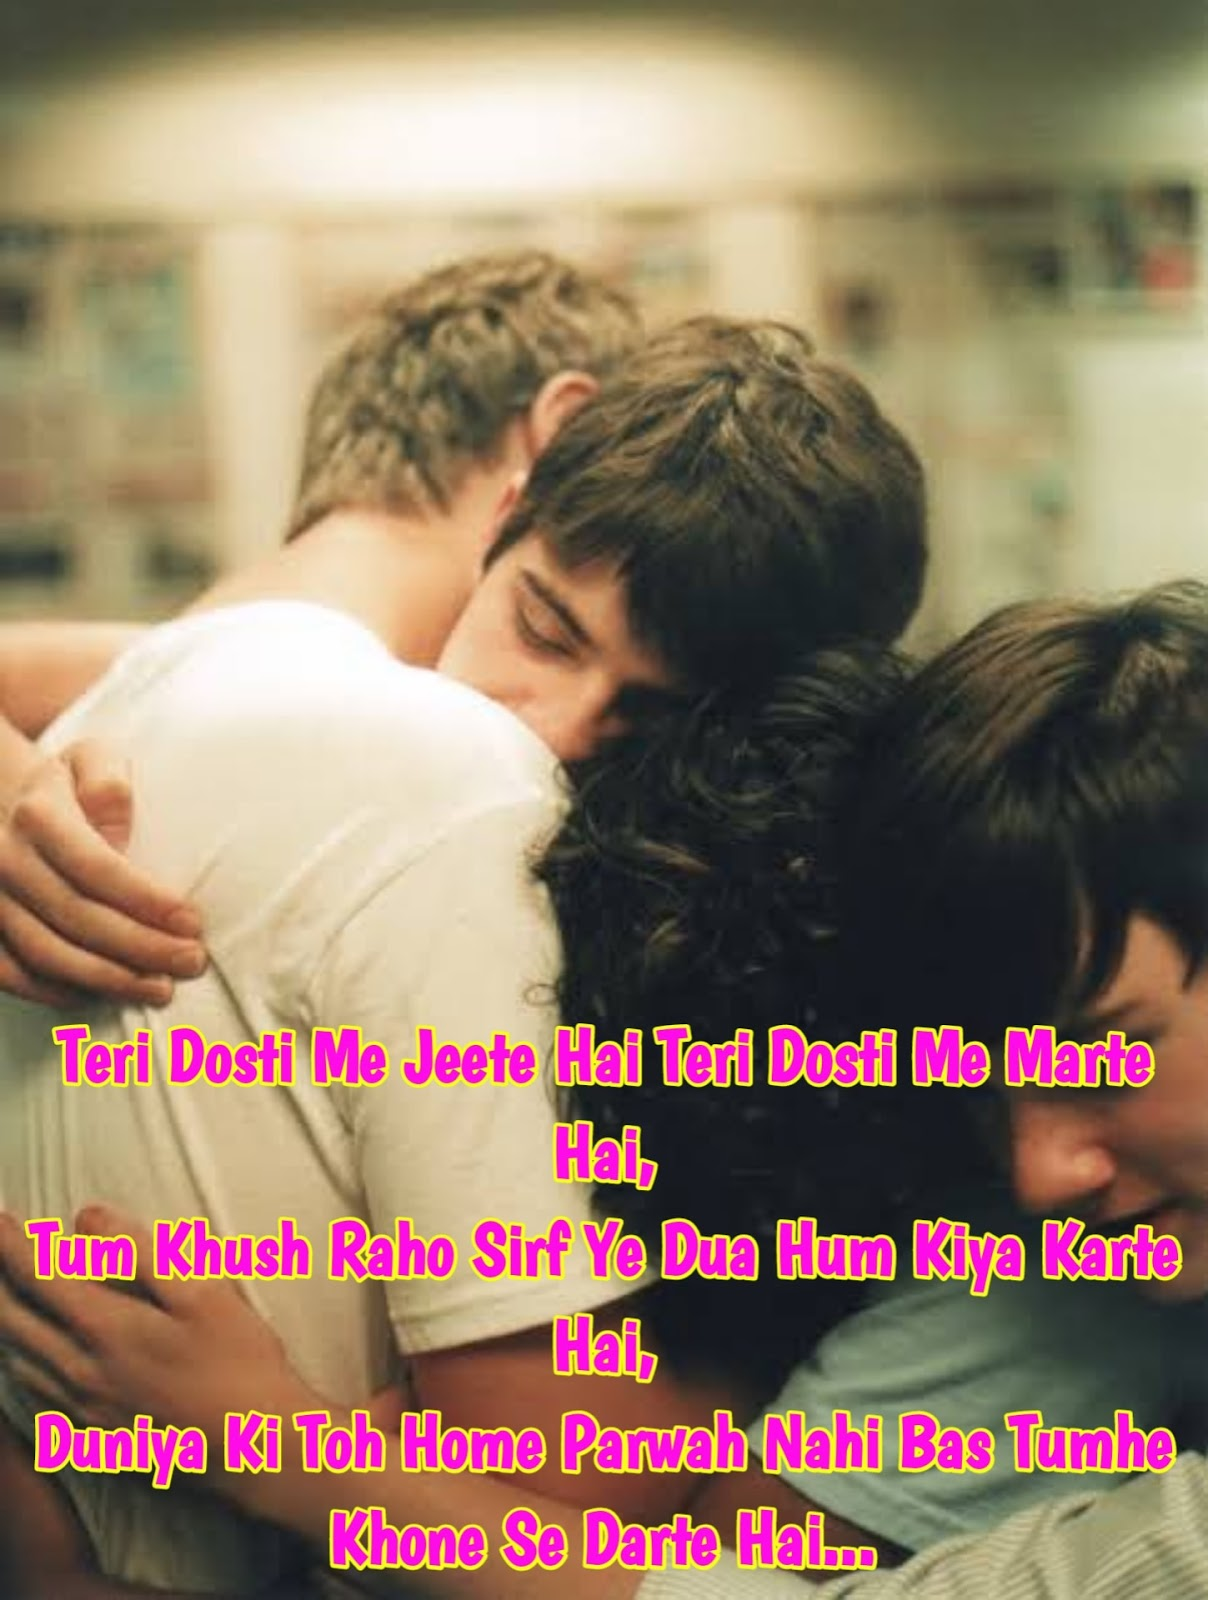 Friendship shayari in English with images